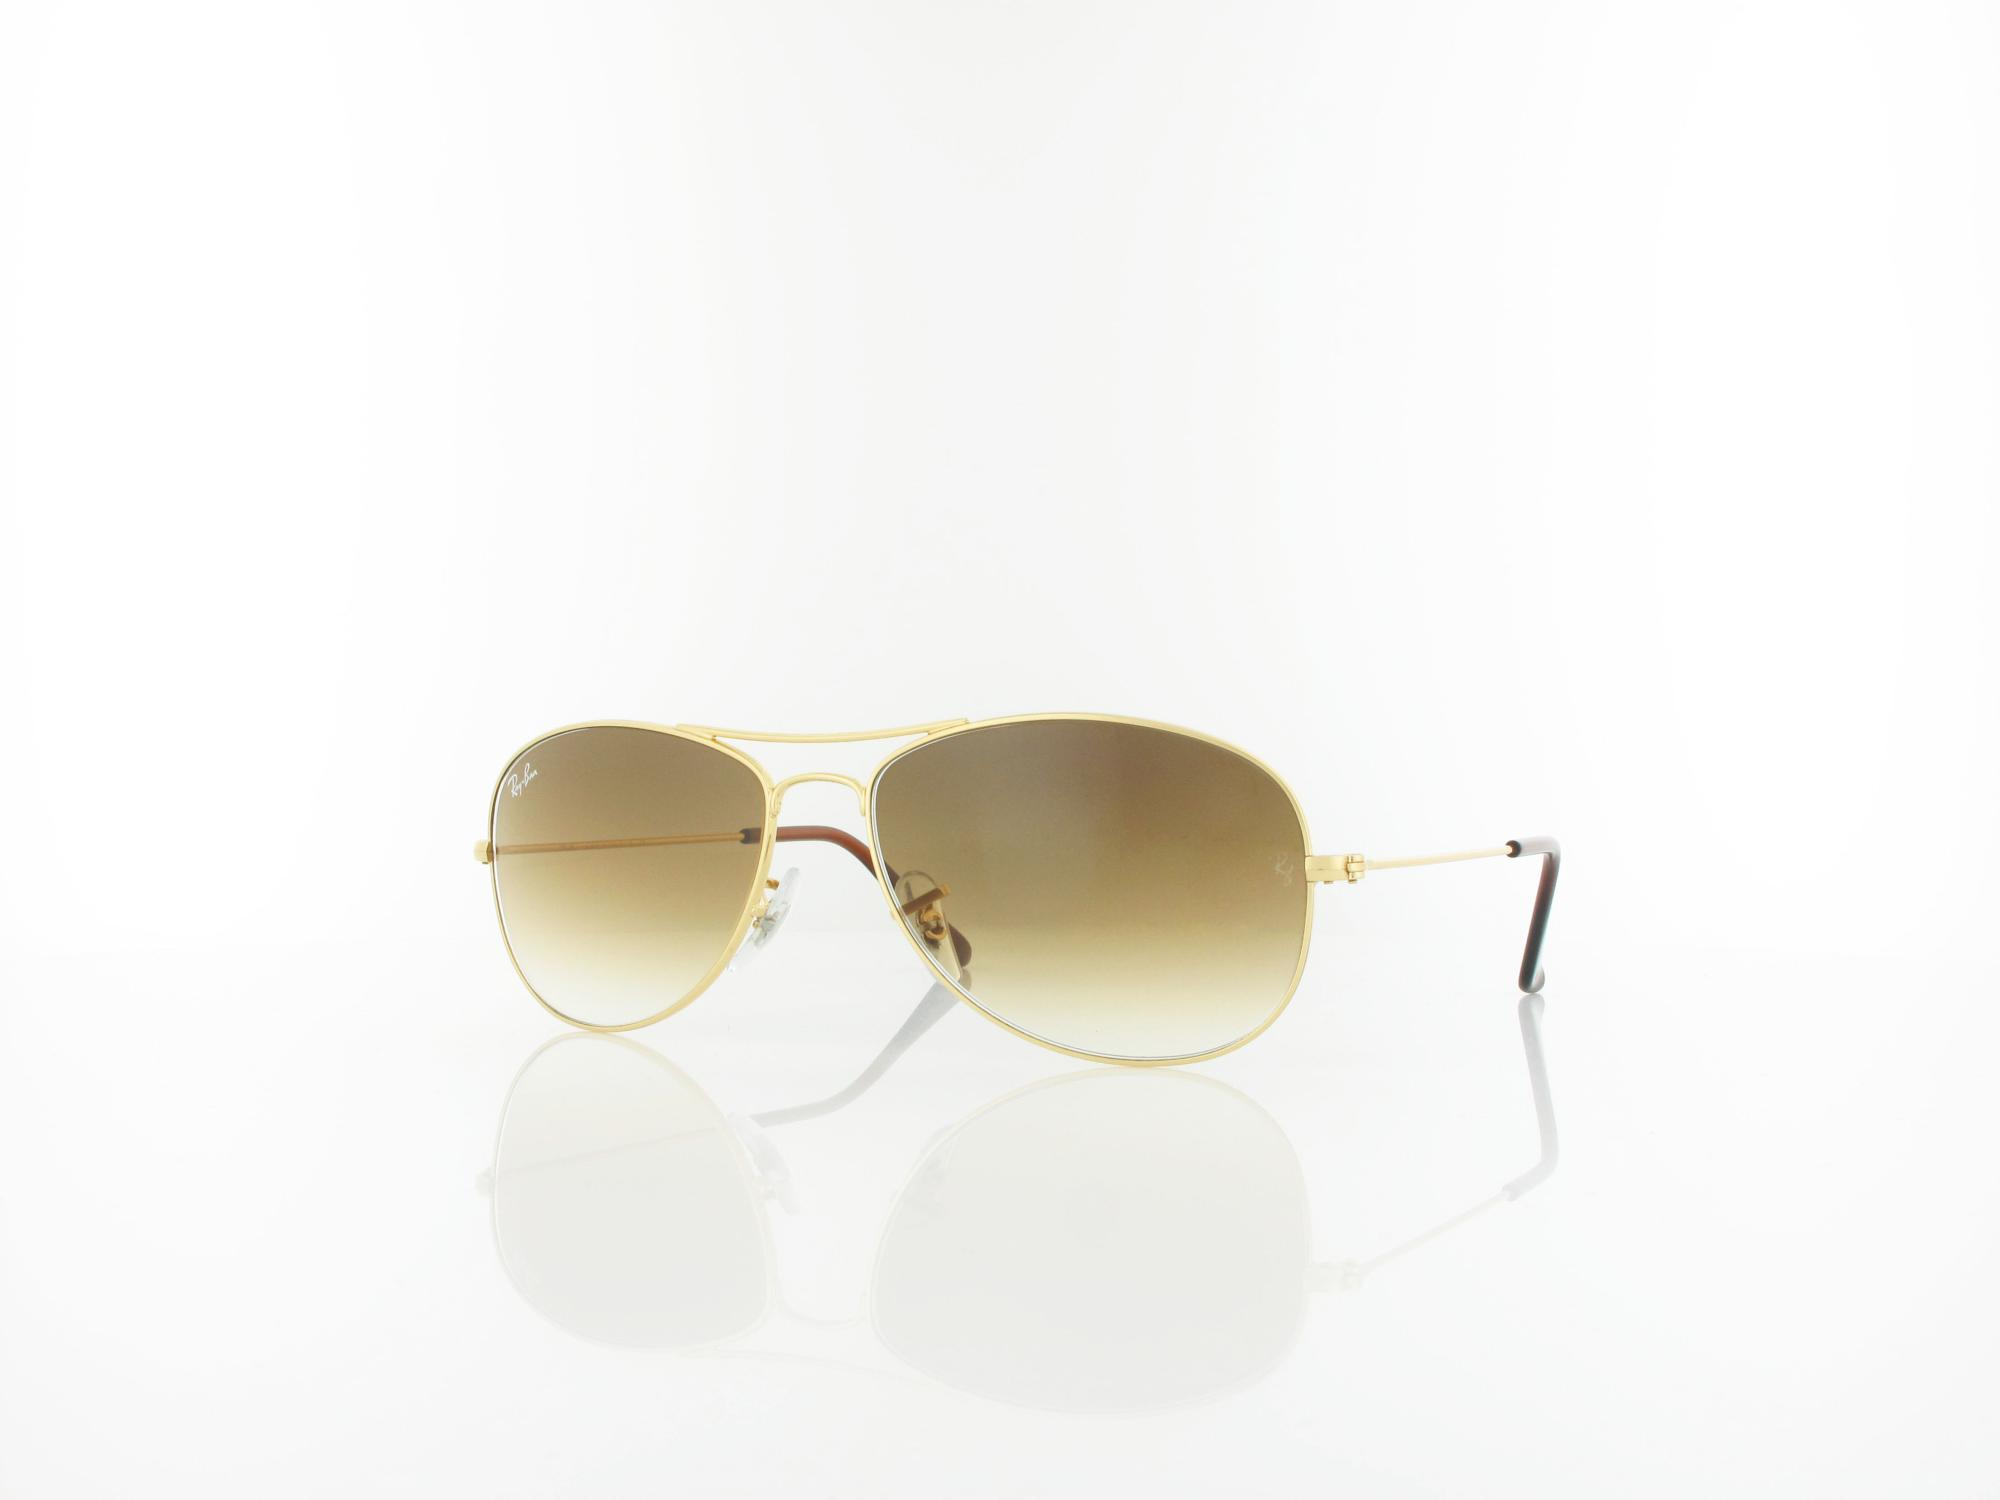 Ray Ban | Cockpit RB3362 001/51 56 | arista / crystal brown gradient